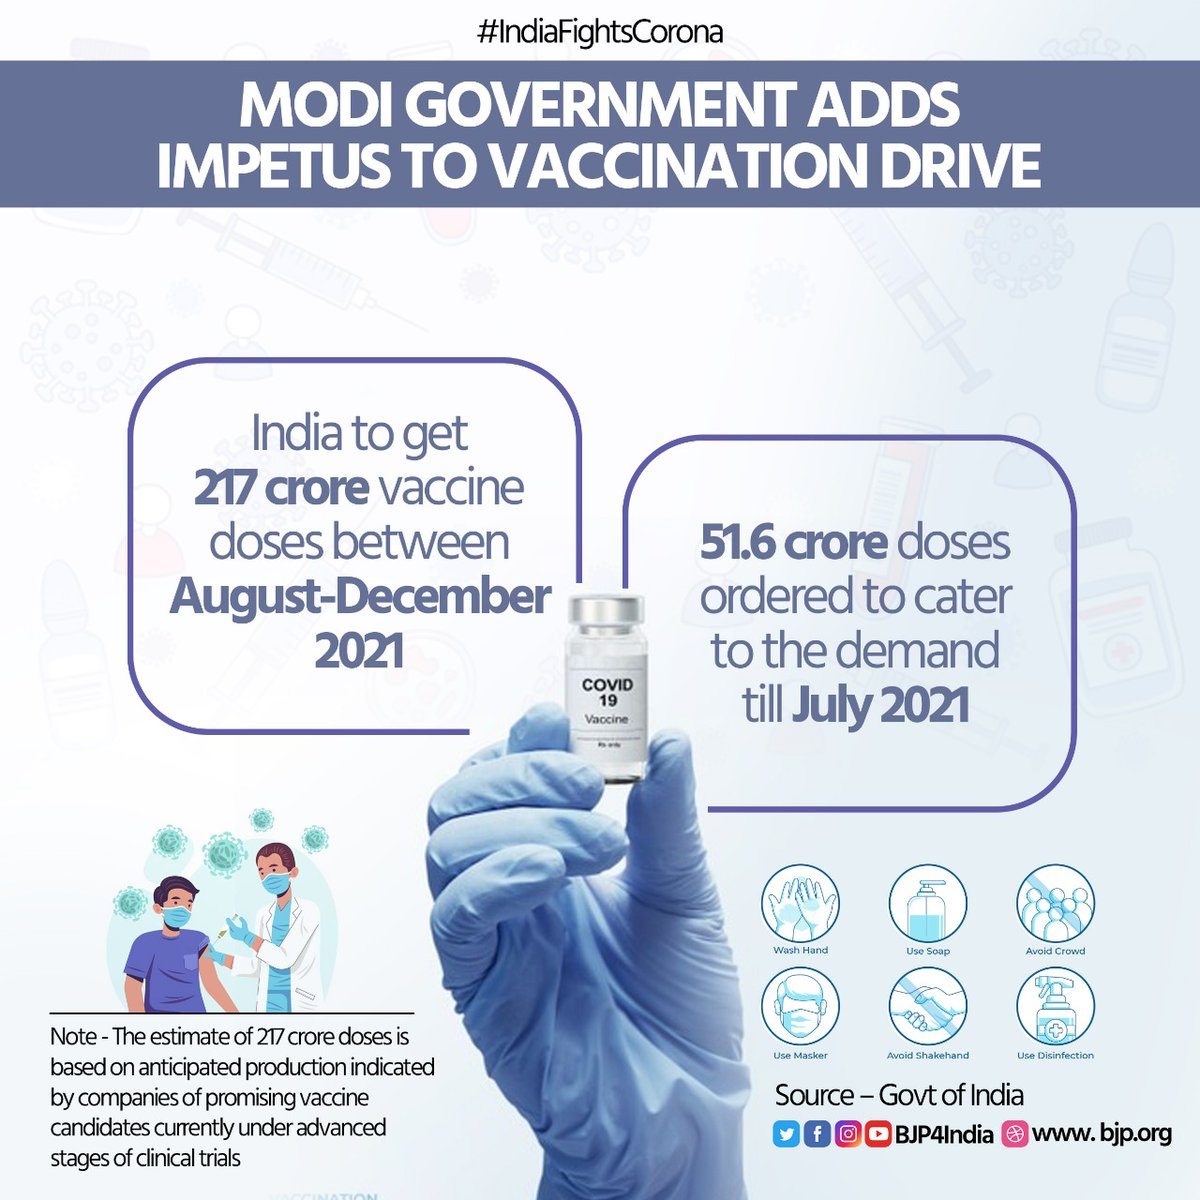 Modi government adds impetus to vaccination drive.  • India to get 217 crore vaccine doses between August-December 2021.  • 51.6 crore doses ordered to cater to the demand till July 2021.  #IndiaFightsCorona